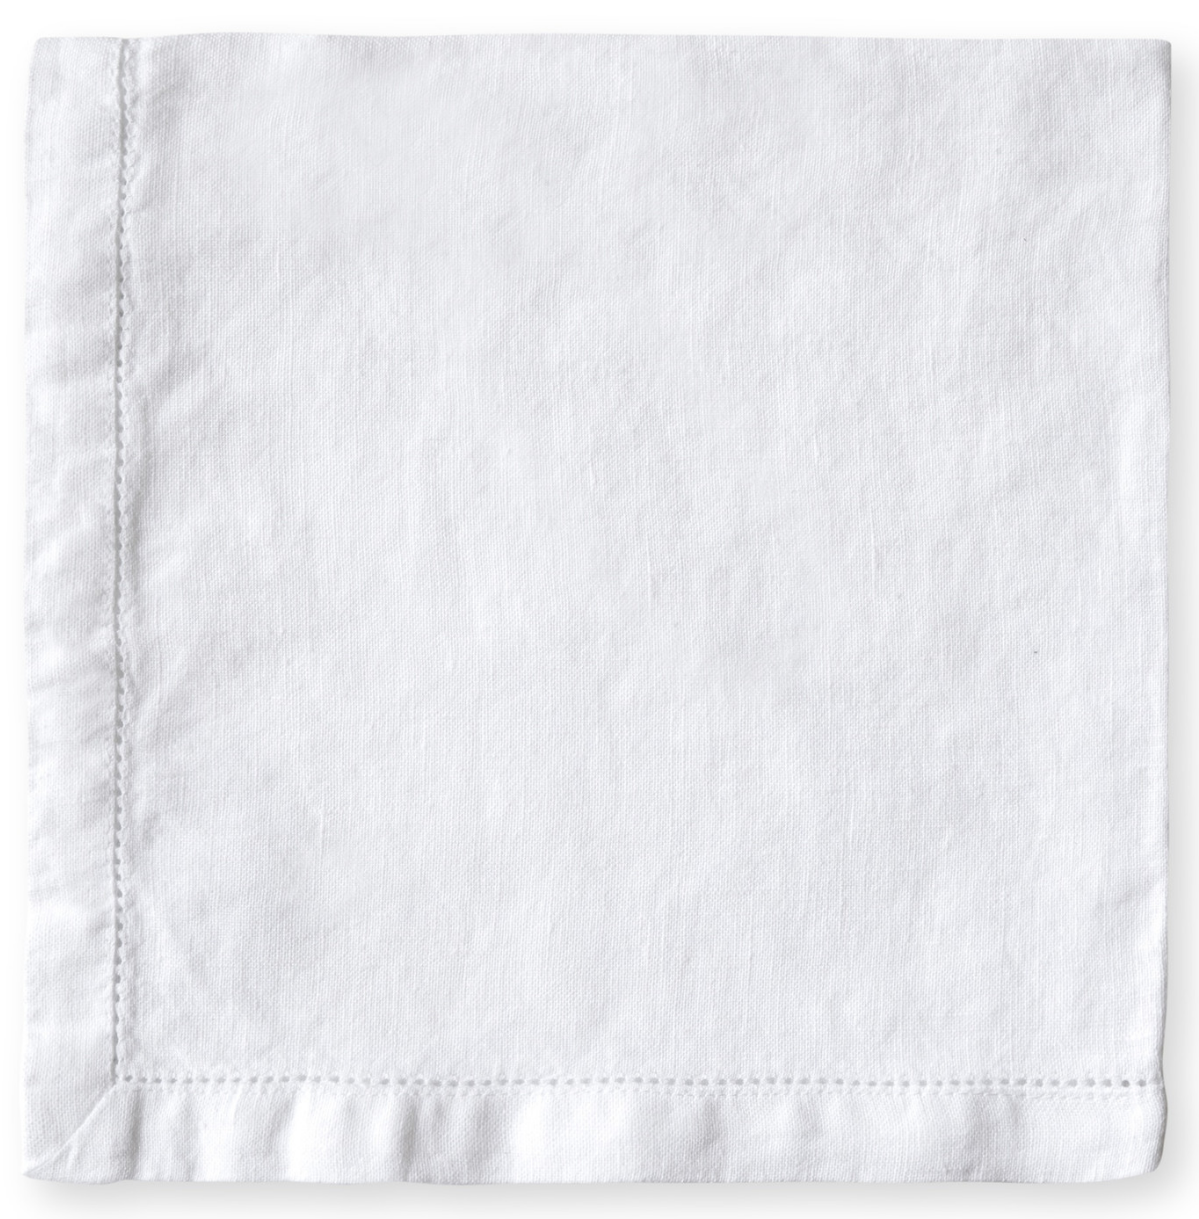 PNG Napkin - 73657